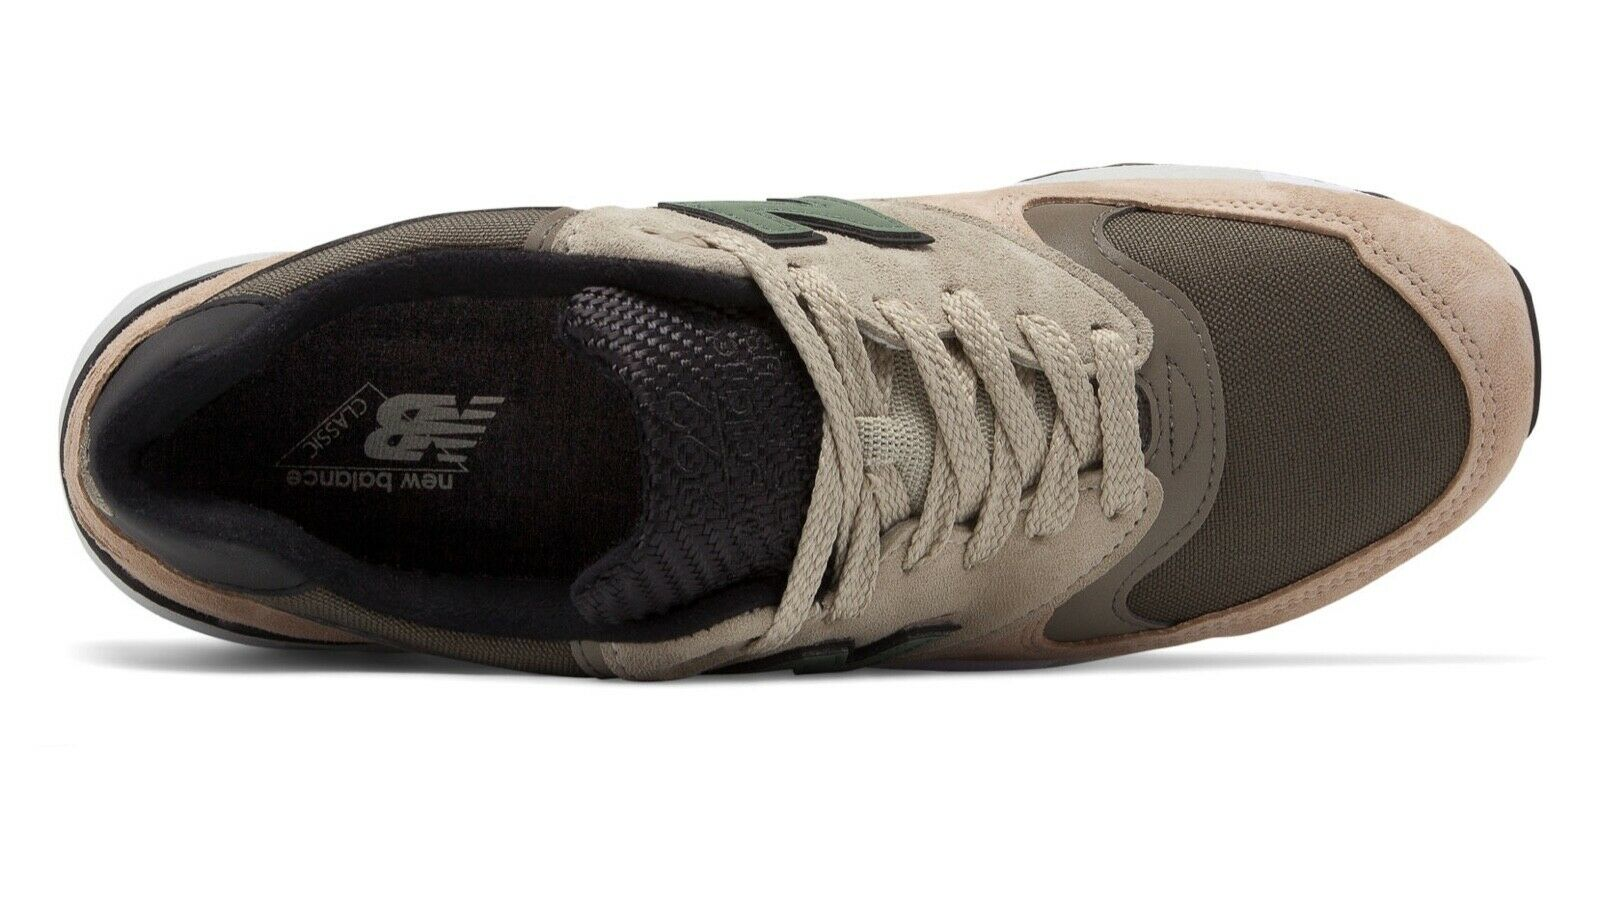 New Balance Men's  999 Made in USA USA USA Lifestyle shoes M999HCC Tan with Cogreen Green c4d73f